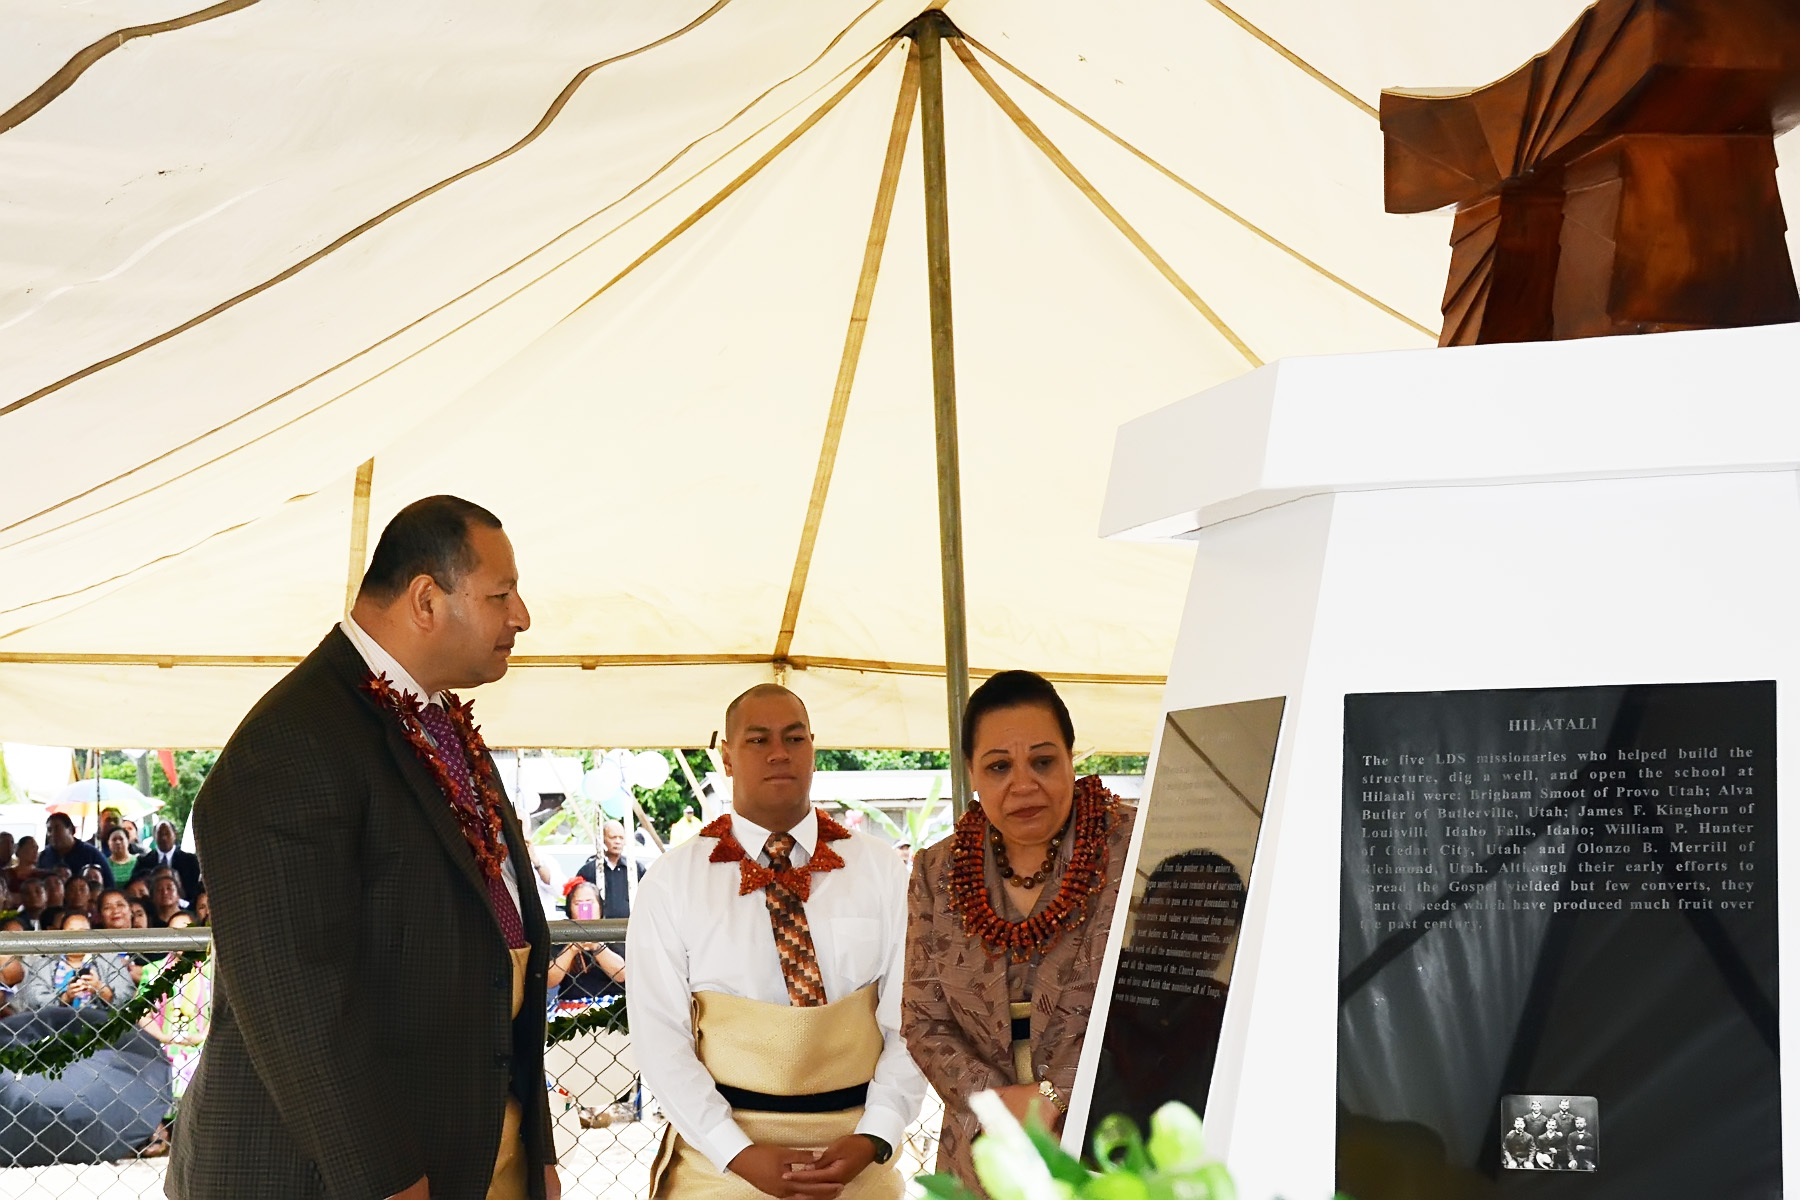 The King of Tonga, son and wife at the dedication of a Latter-day Saint monument.